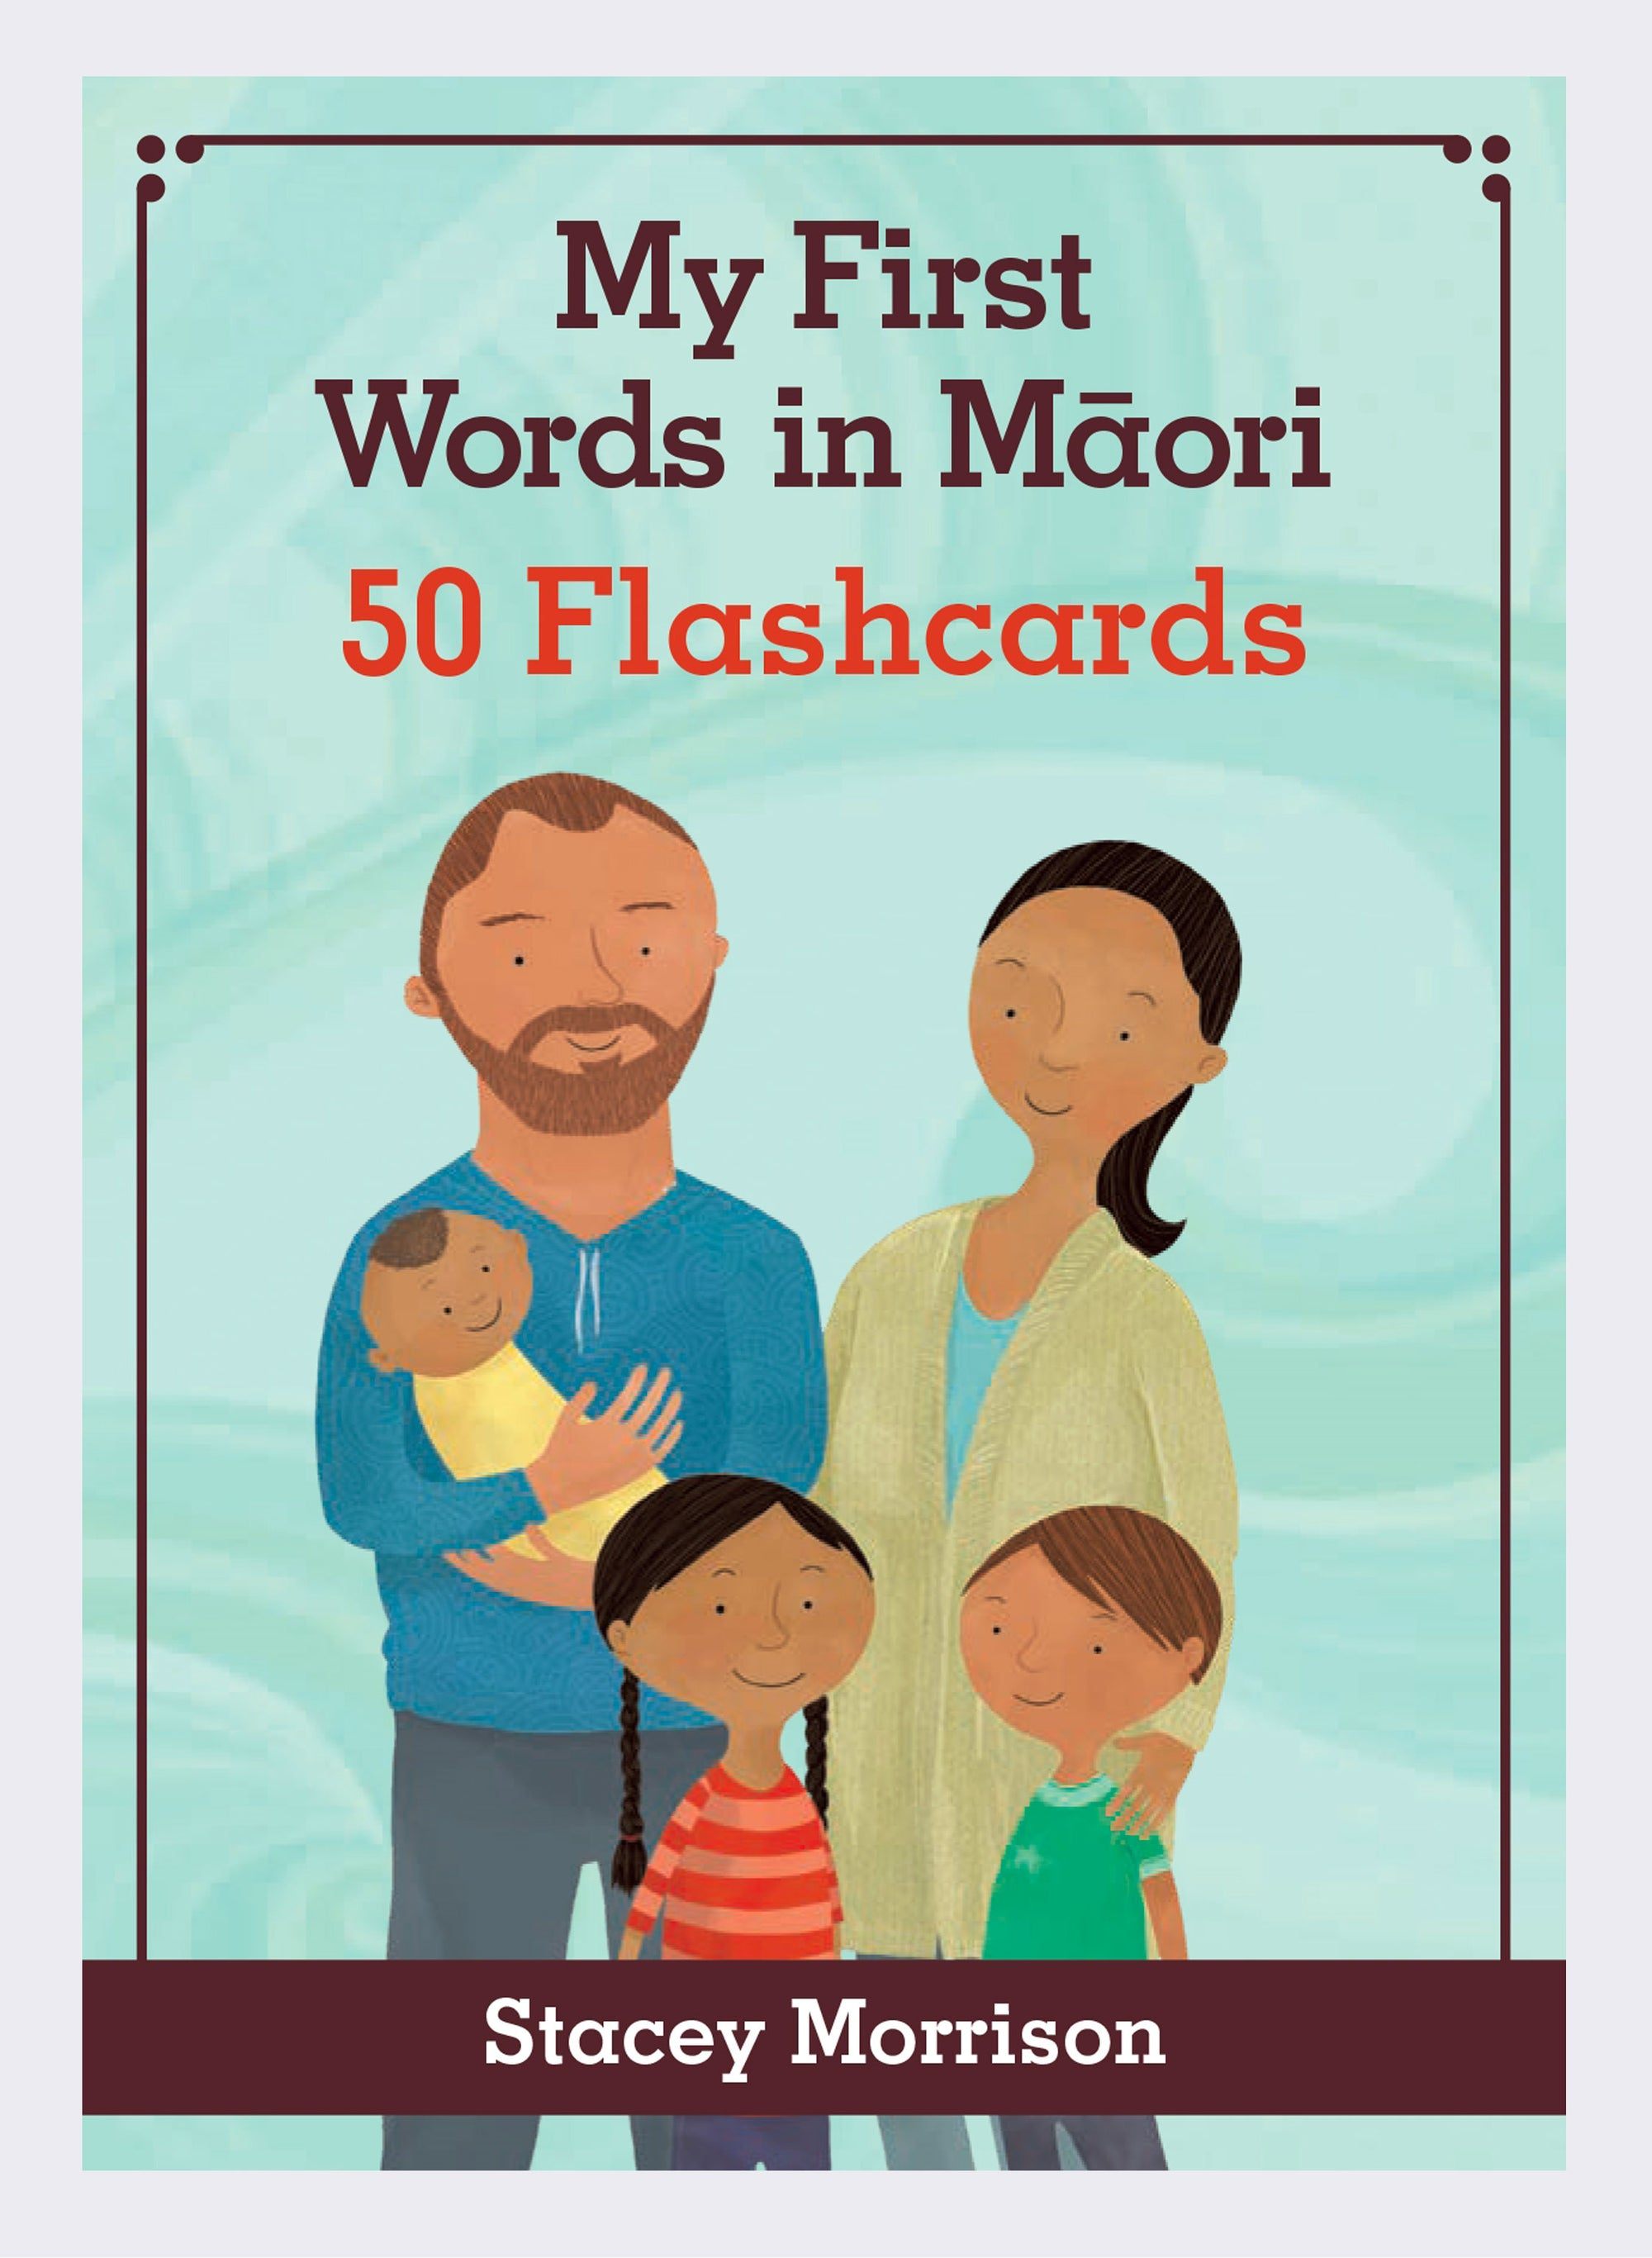 My First Words In Māori - (Flash Cards)